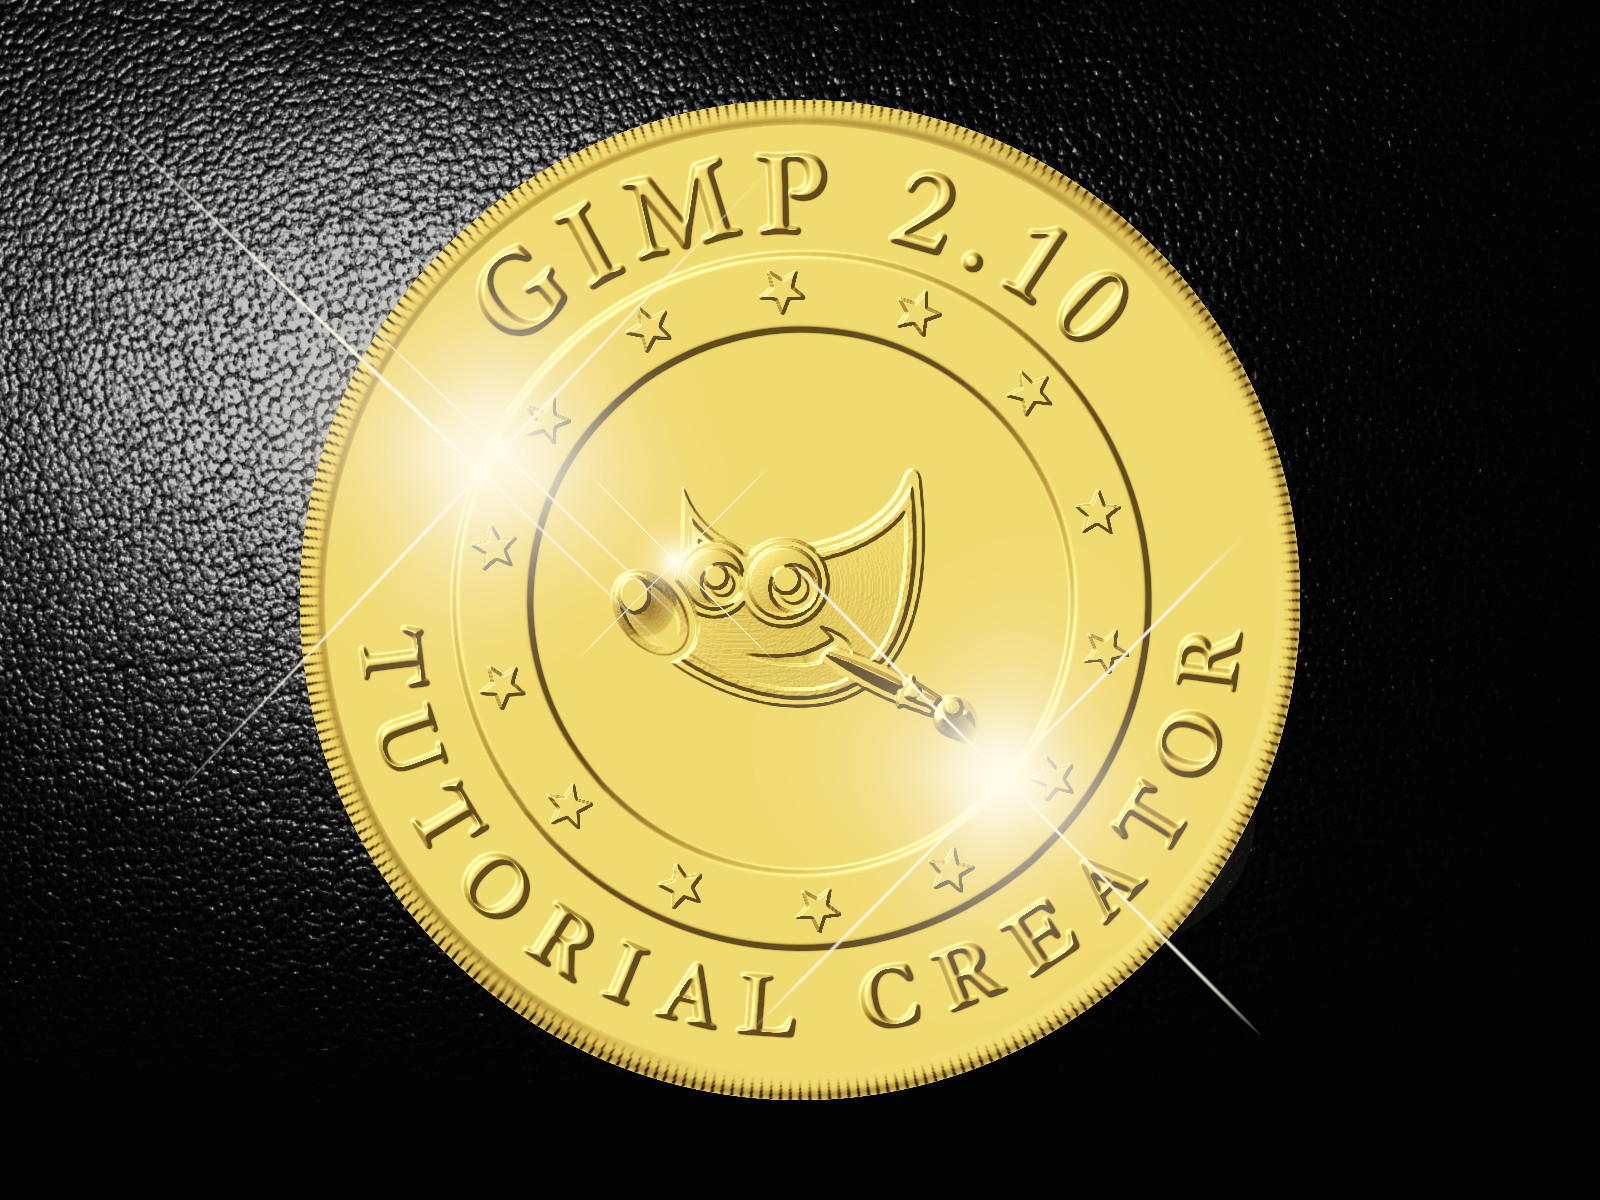 Gold Coin In Gimp 2 10 By Conbagui